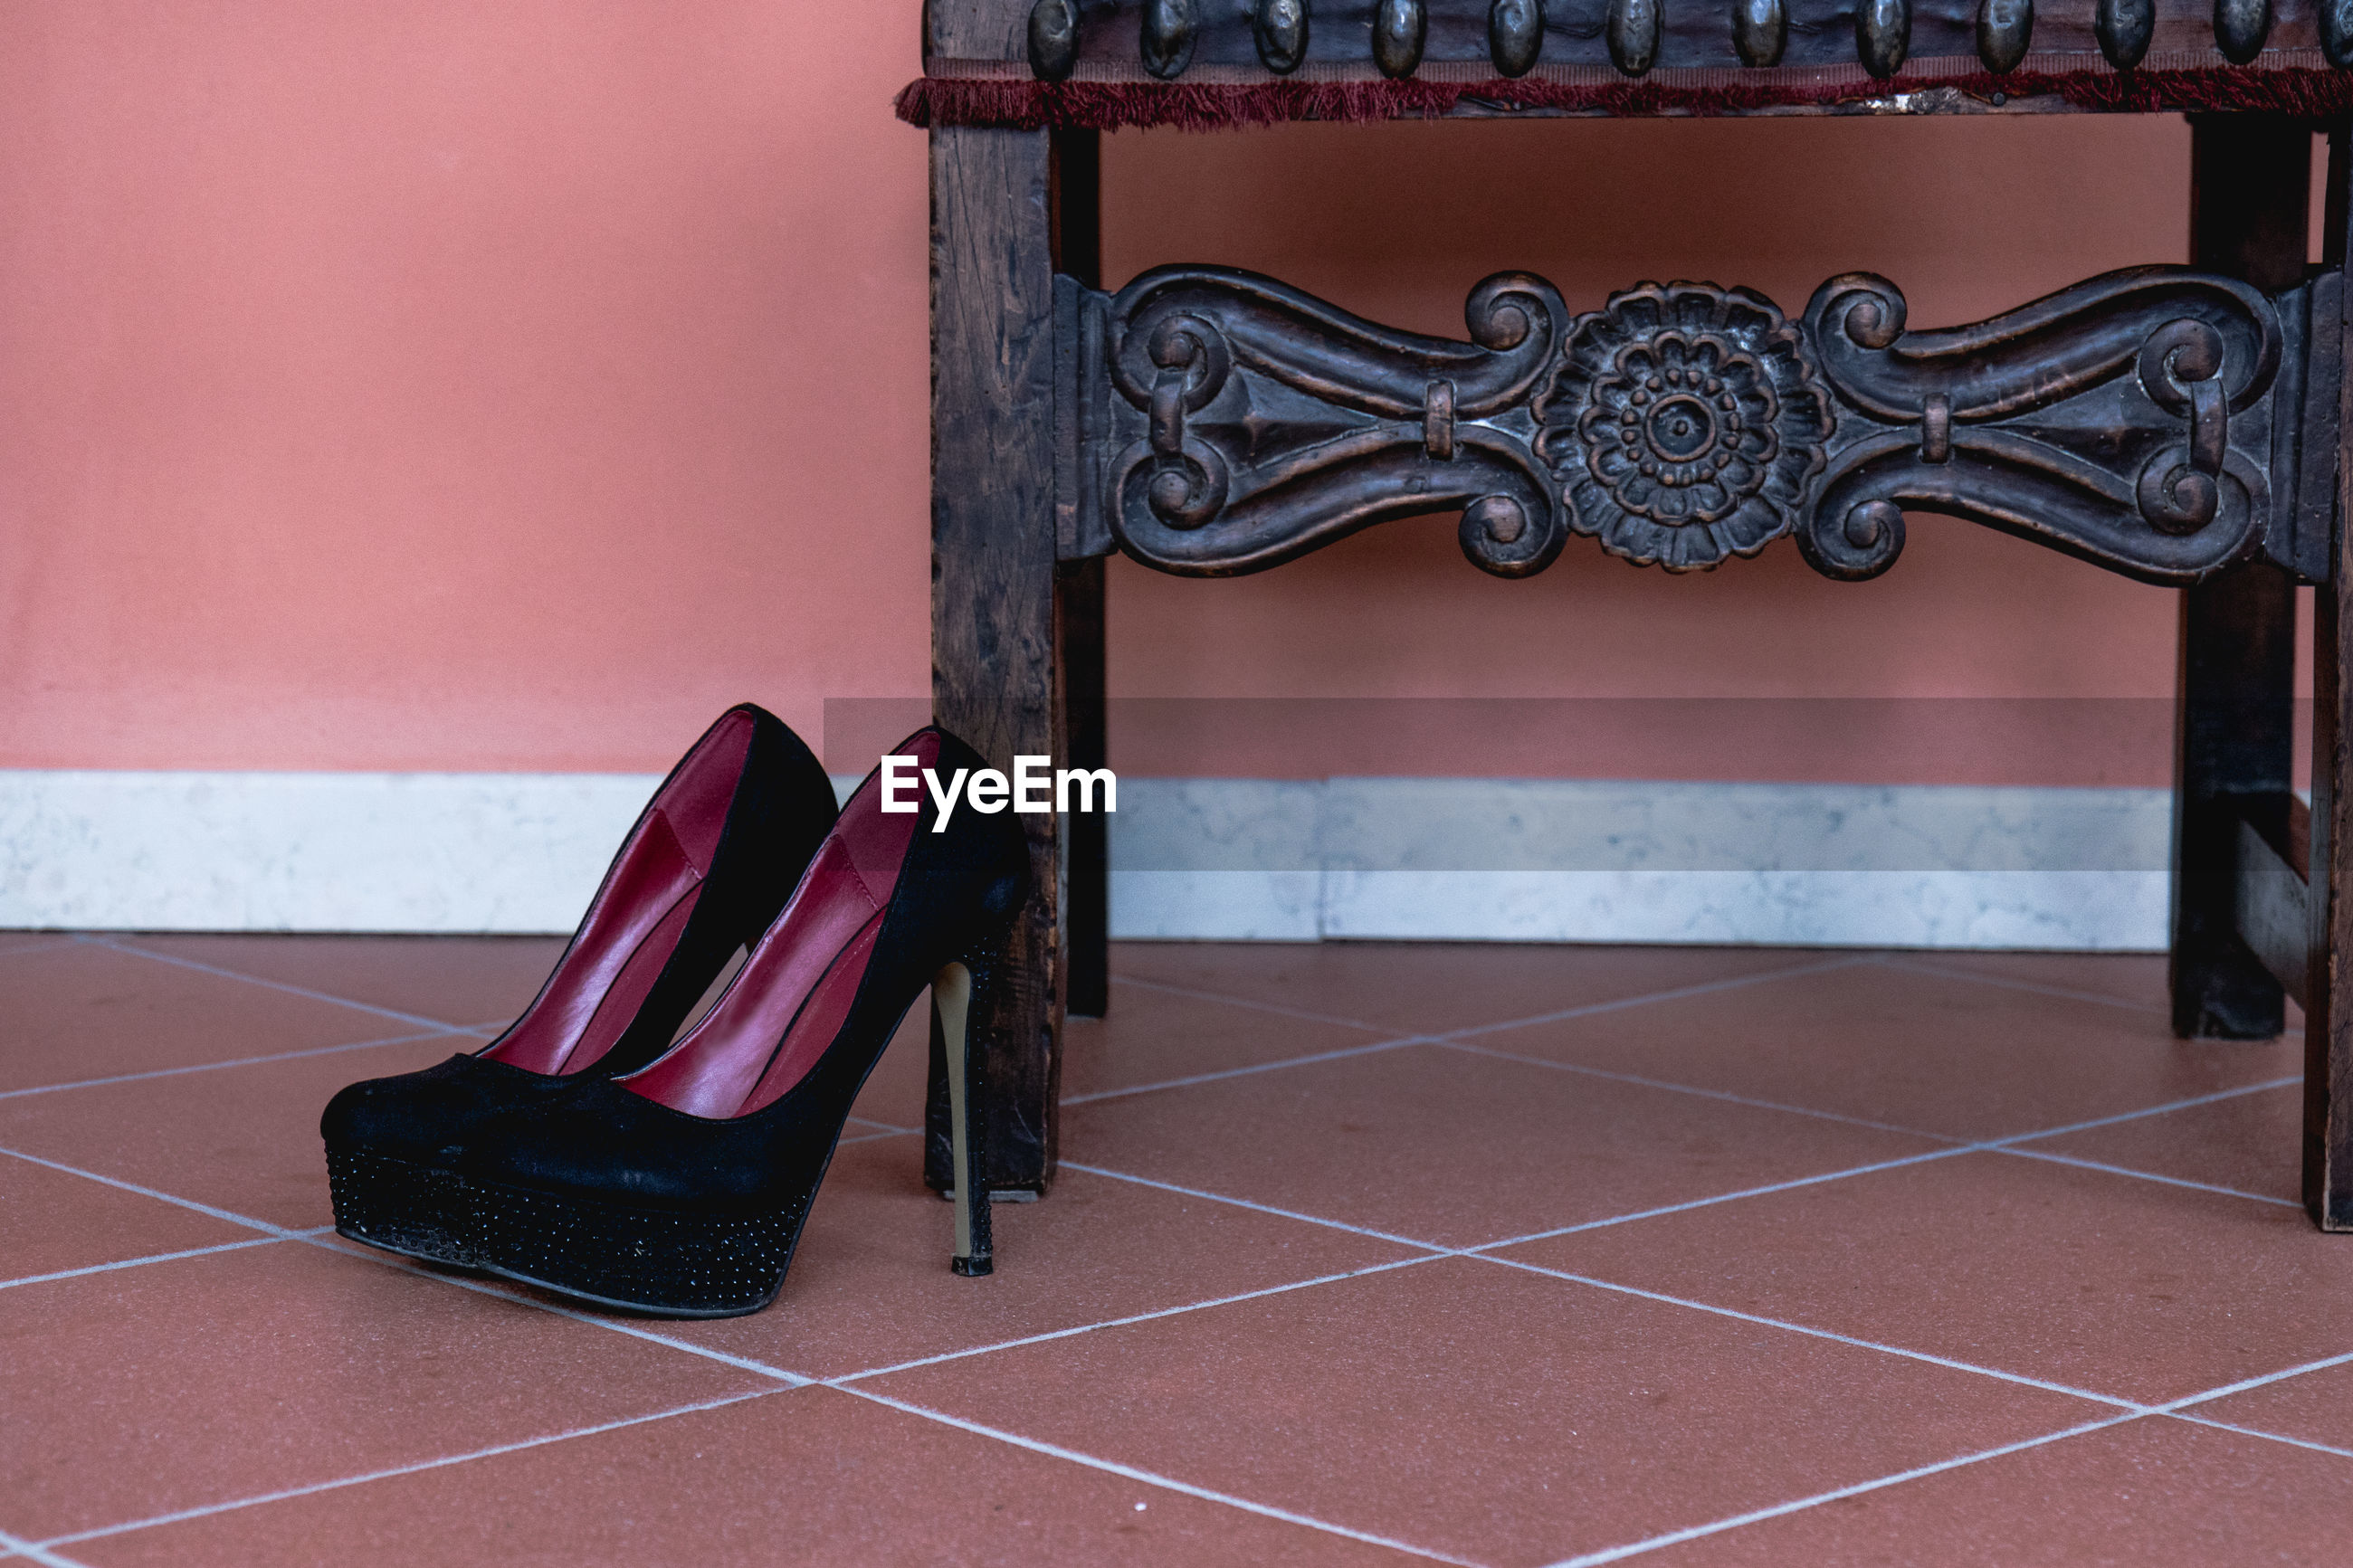 Close-up of empty shoes on tiled floor against wall